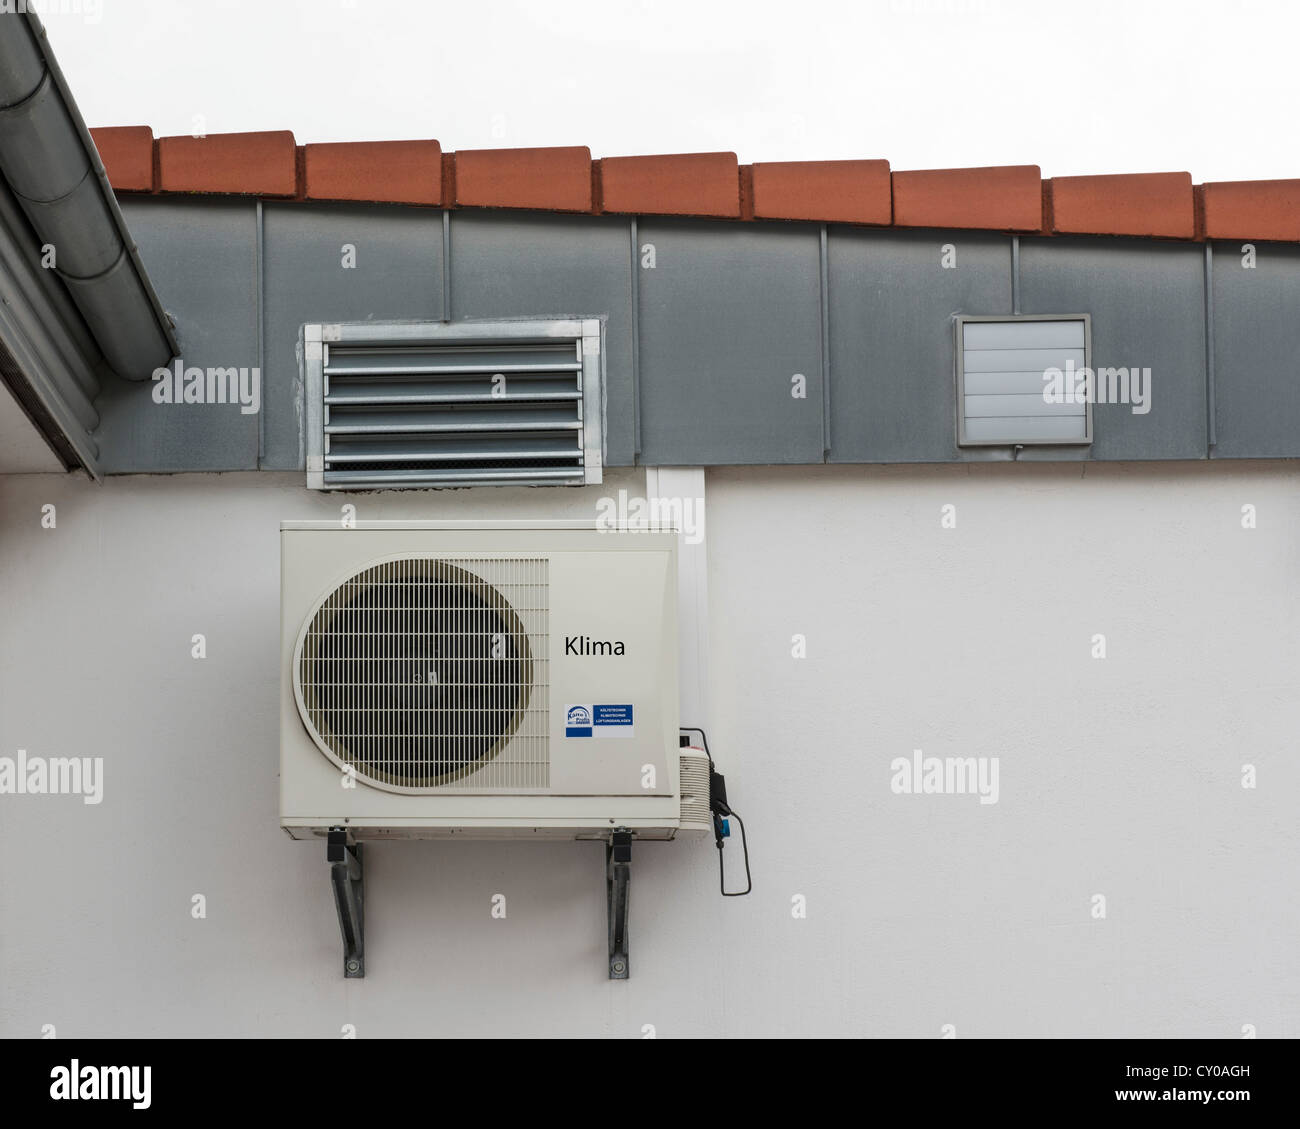 Air conditioning unit on a wall, PublicGround - Stock Image